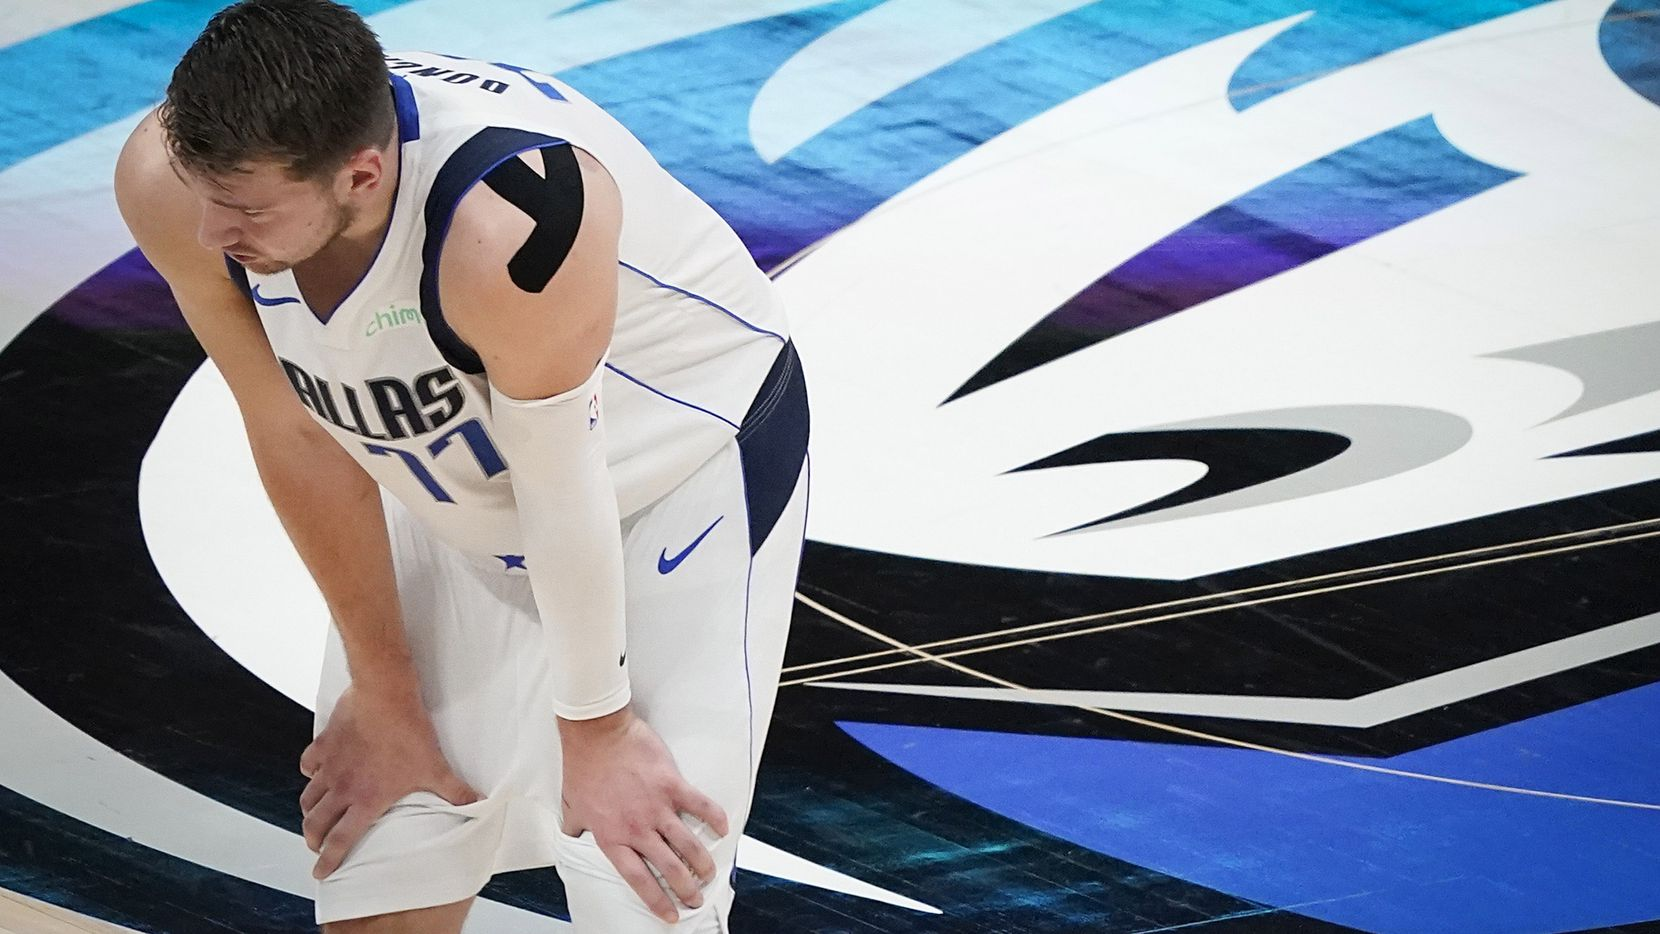 Dallas Mavericks guard Luka Doncic (77) catches his breath during a stop in play during the second quarter of an NBA playoff basketball game against the LA Clippers at American Airlines Center on Sunday, May 30, 2021, in Dallas.